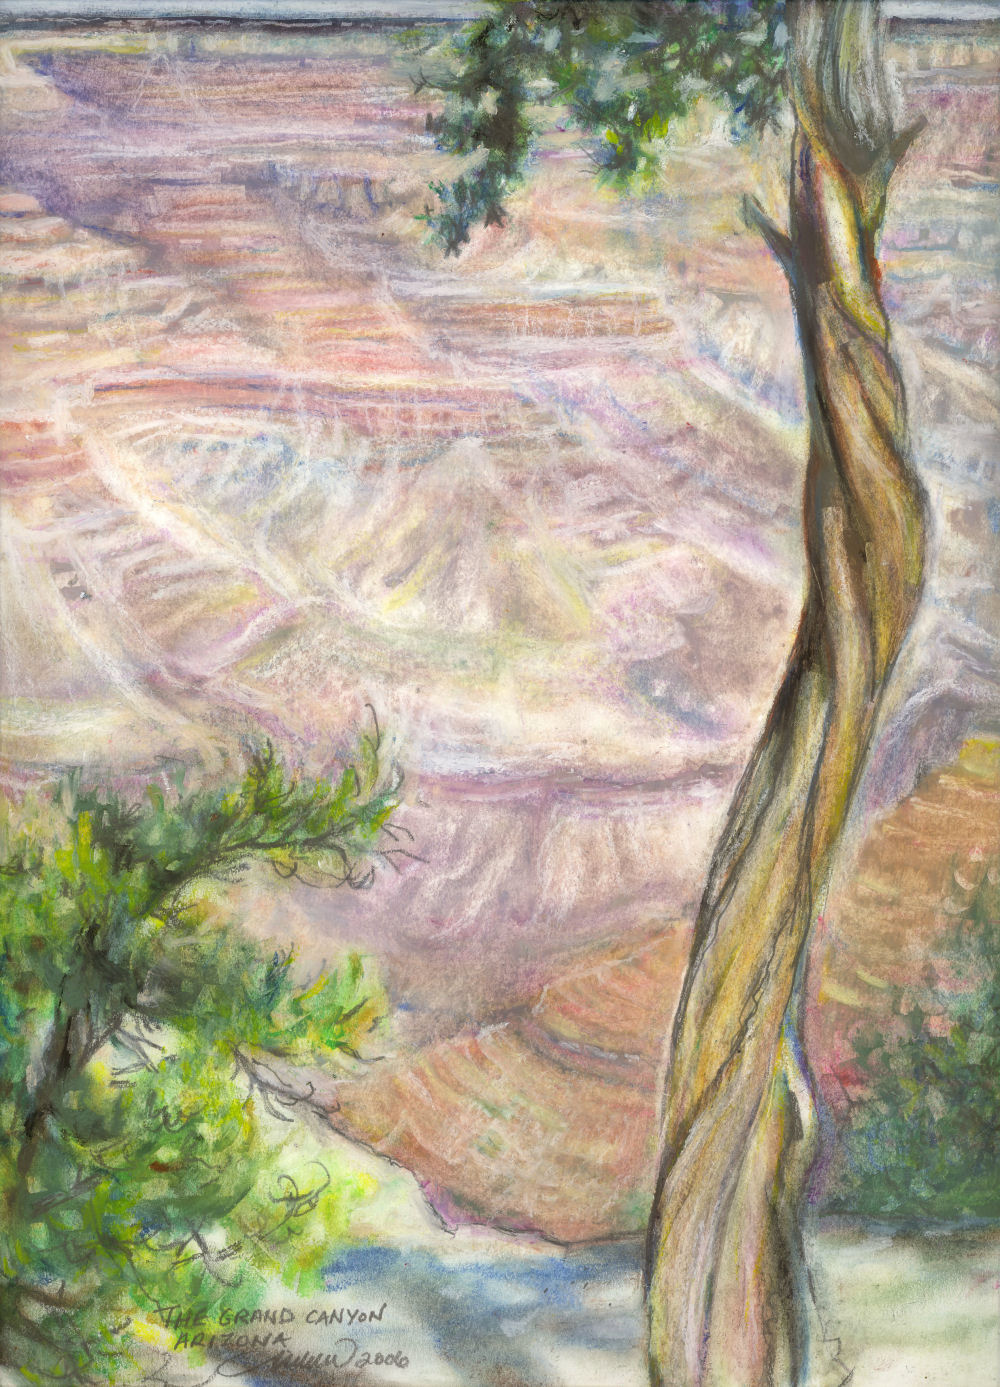 Silent Witness - Grand Canyon Juniper, North entrance, Arizona USA -14 x 11 inches oil pastels on paper